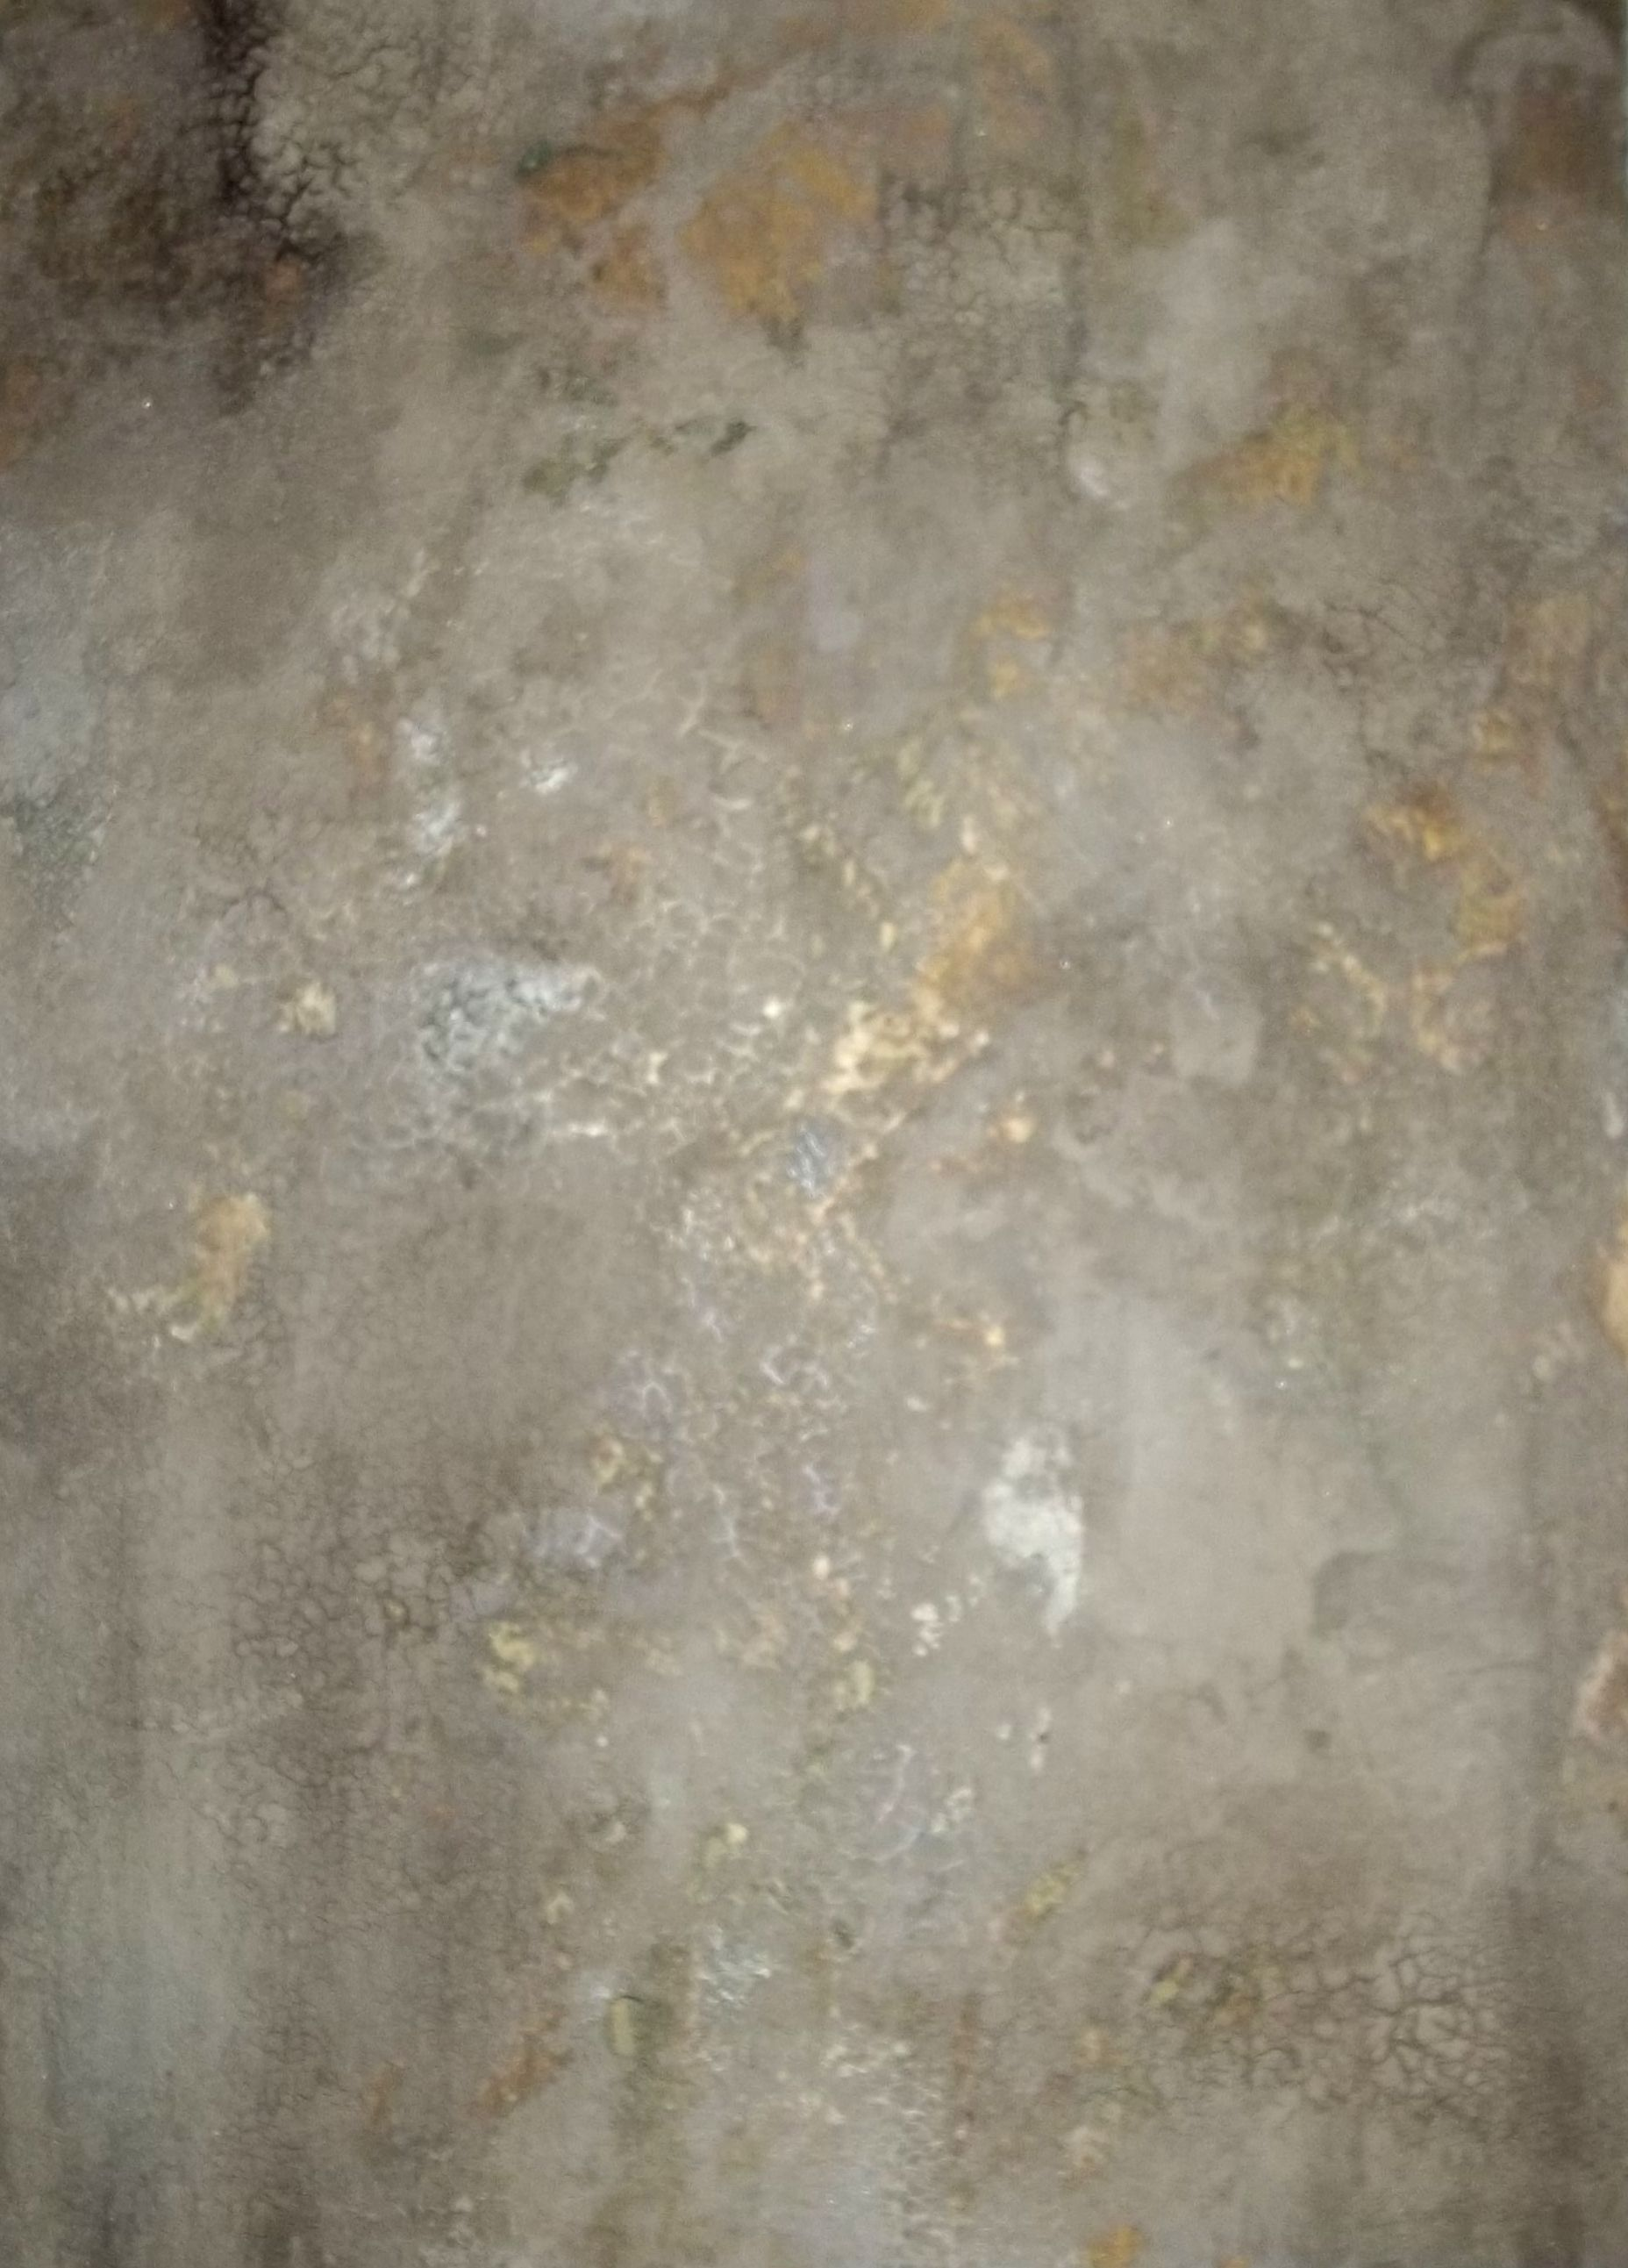 Crackled Plaster Over Gold Foil Faux And - Artistic Painting